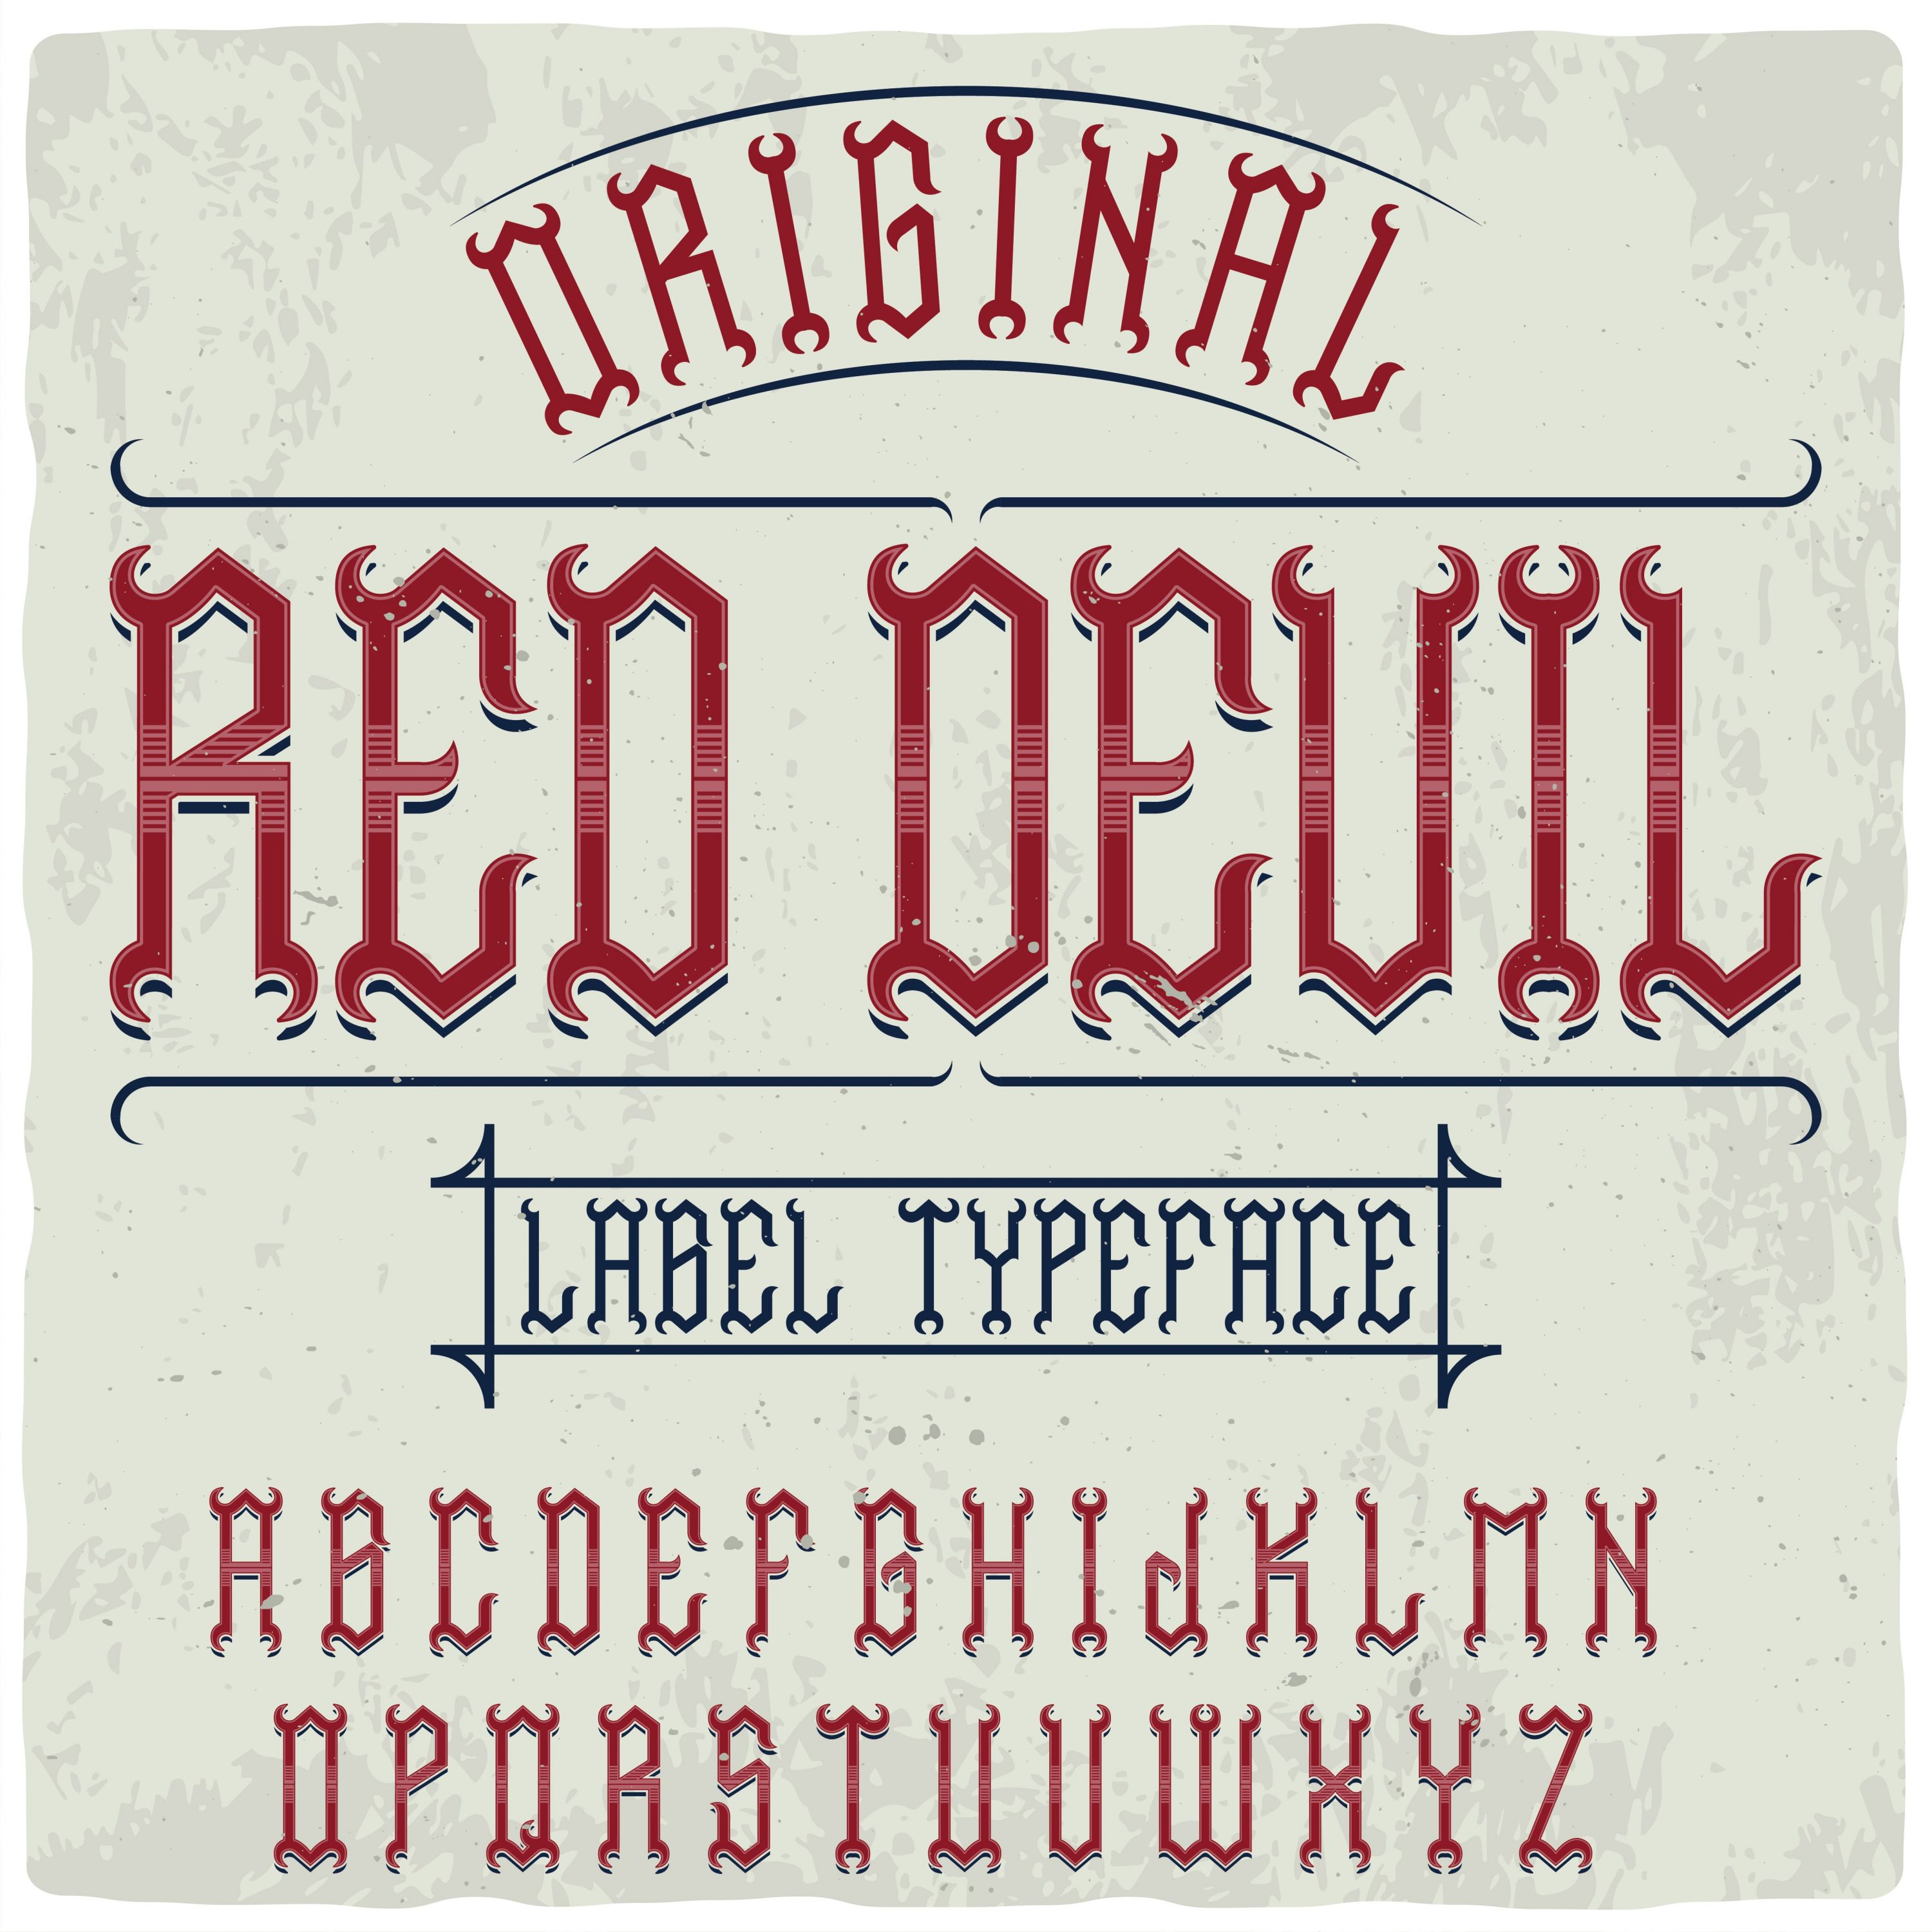 Such a fiery font with graphics.